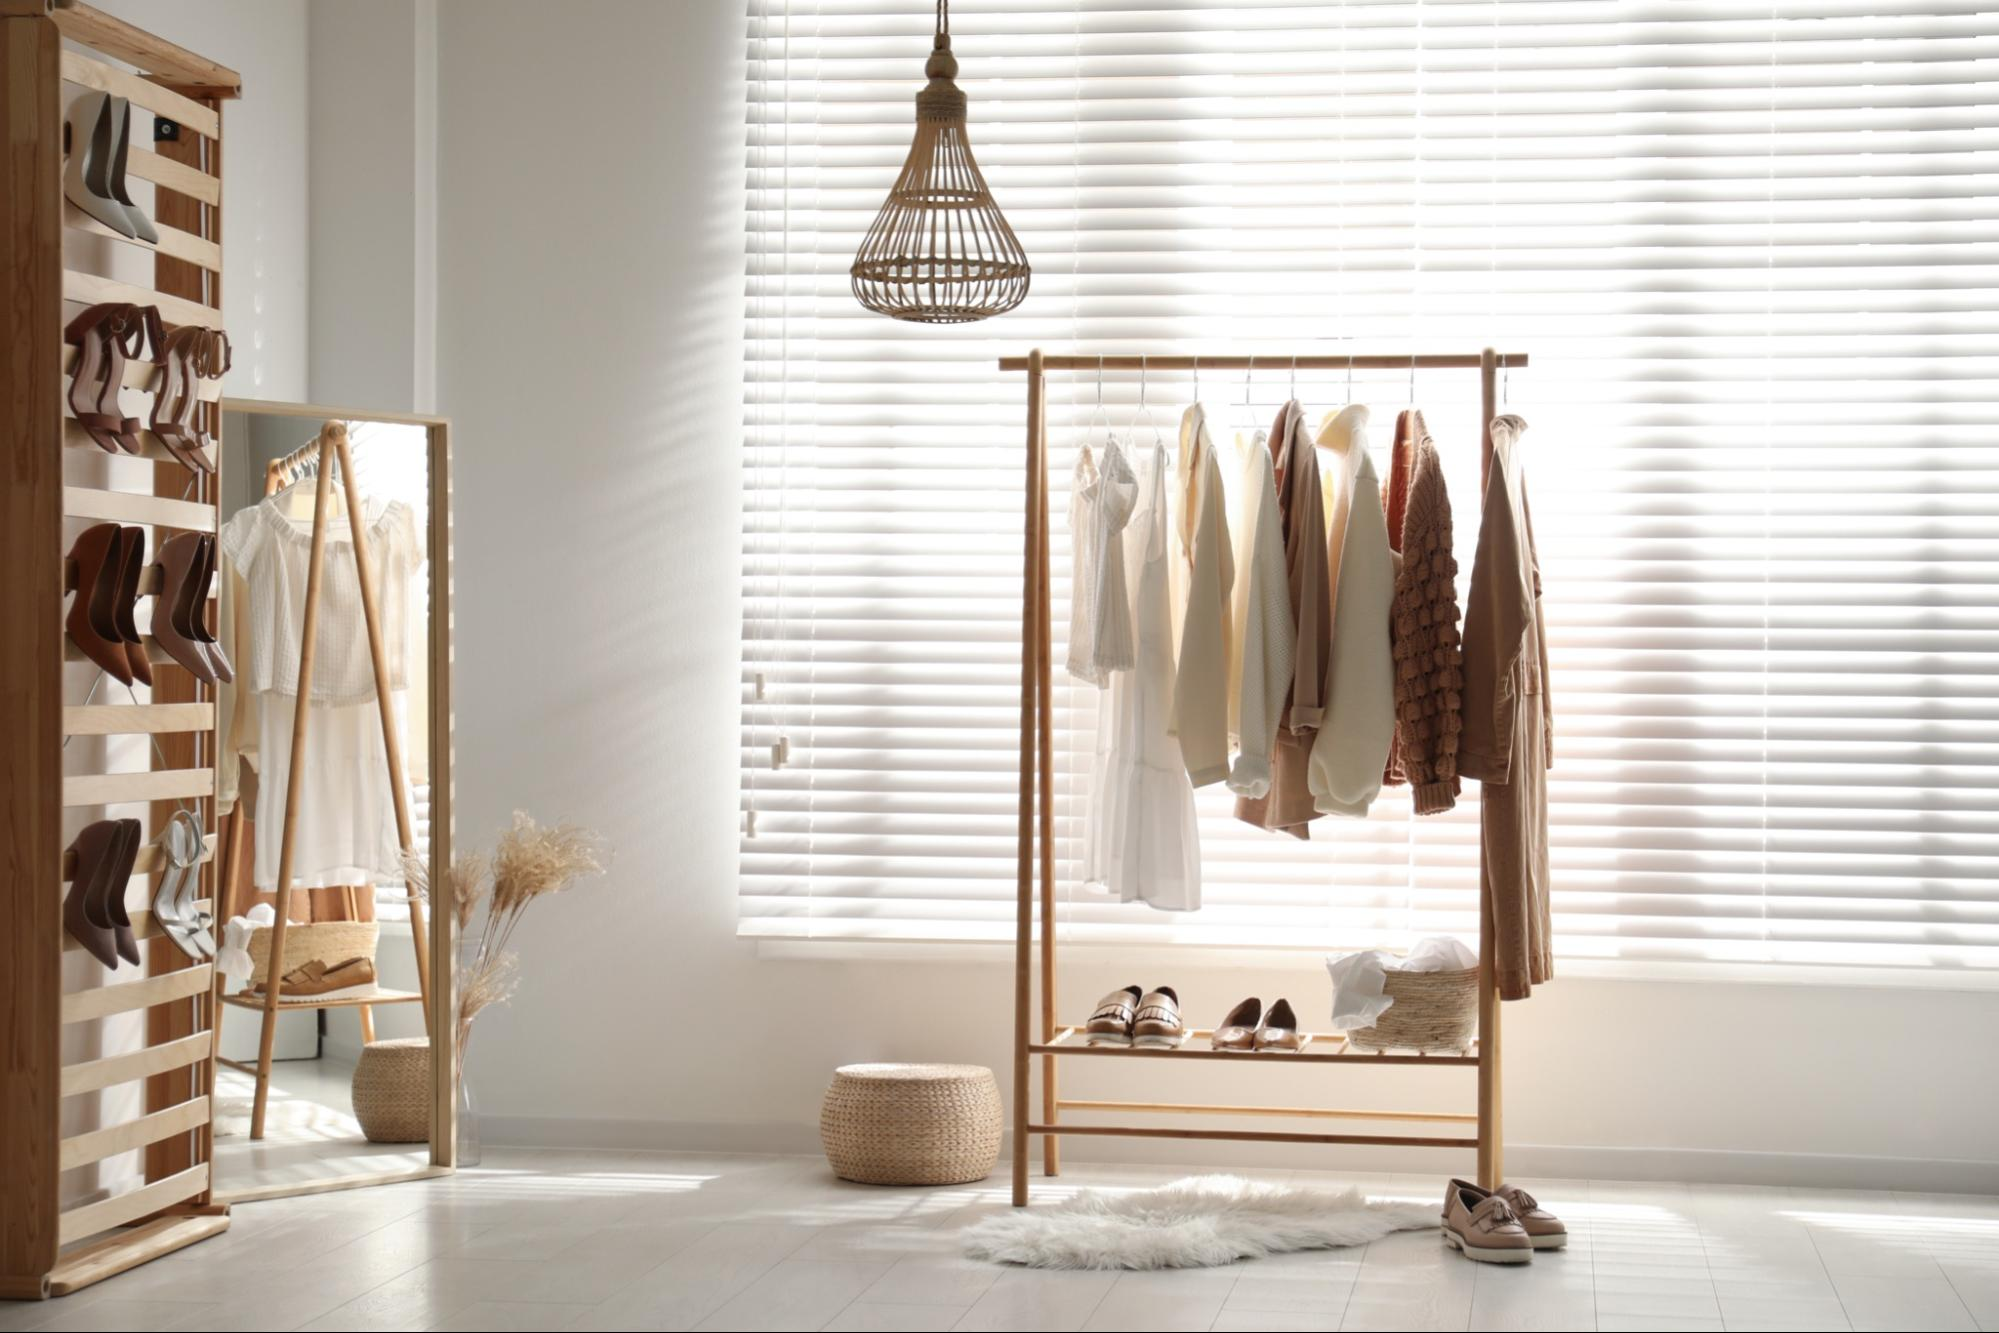 Window dressing ideas for your home